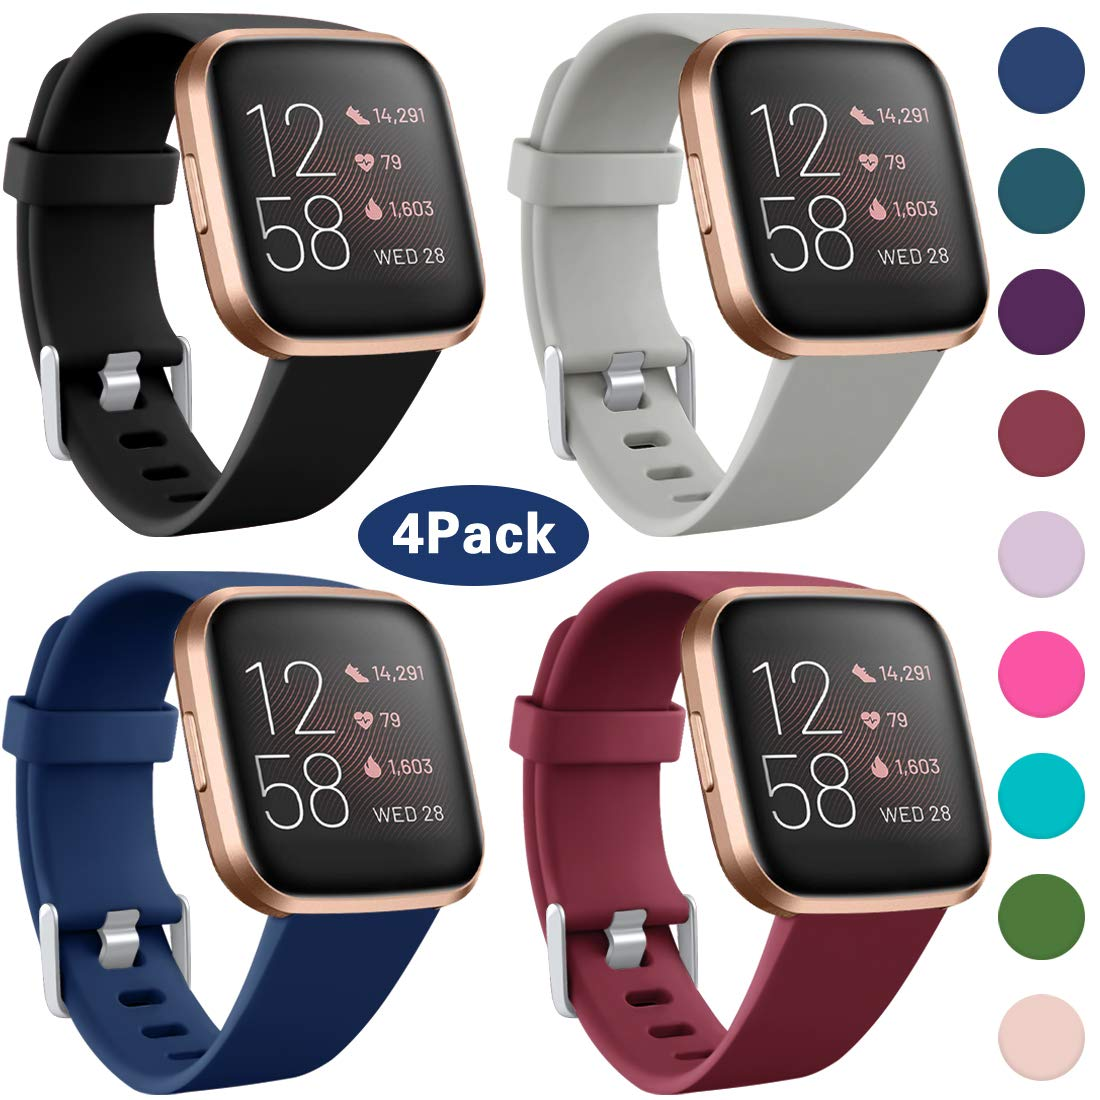 Maledan Compatible with Fitbit Versa 2 Bands for Women Men Soft Silicone Band Sport Replacement Strap for Fitbit Versa Watch/Versa 2/Versa Lite SE, Large, 4 Packs Black/Gray/Navy Blue/Wine Red